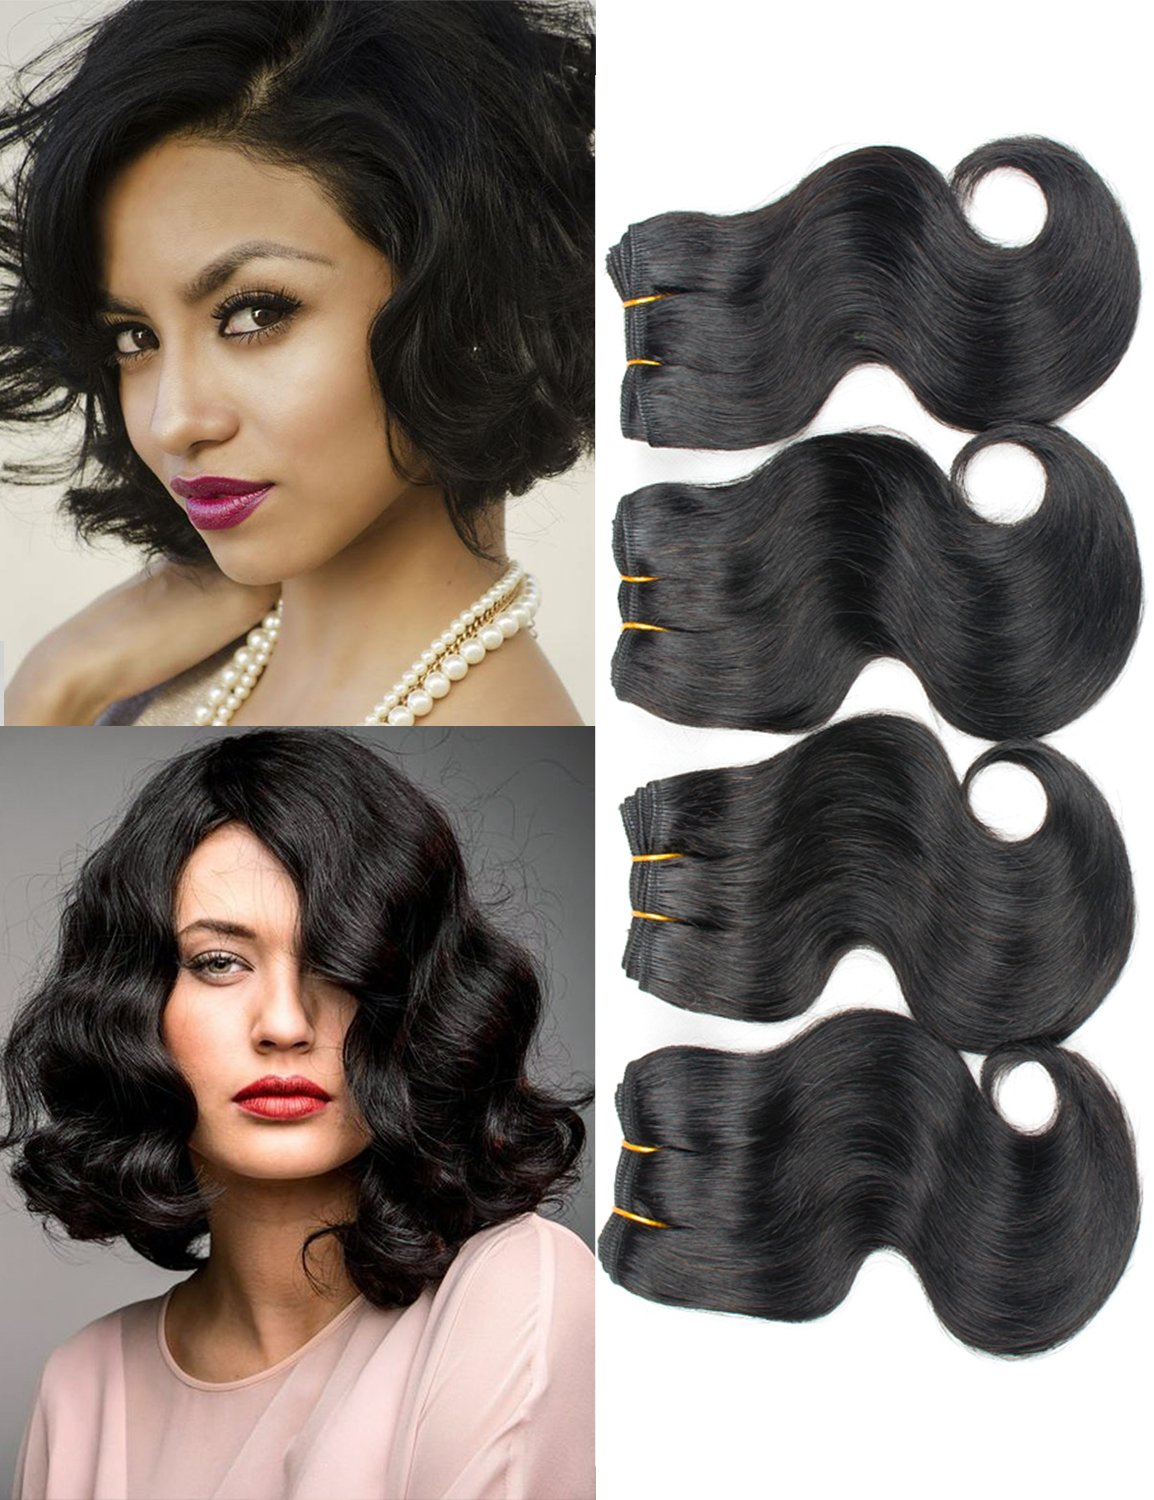 Brazilian Hair Short Human Hair 4 Bundles Body Wave 8'' 100% Unprocessed 50g/Piece (4 Piece, Natural Color Body Wave)